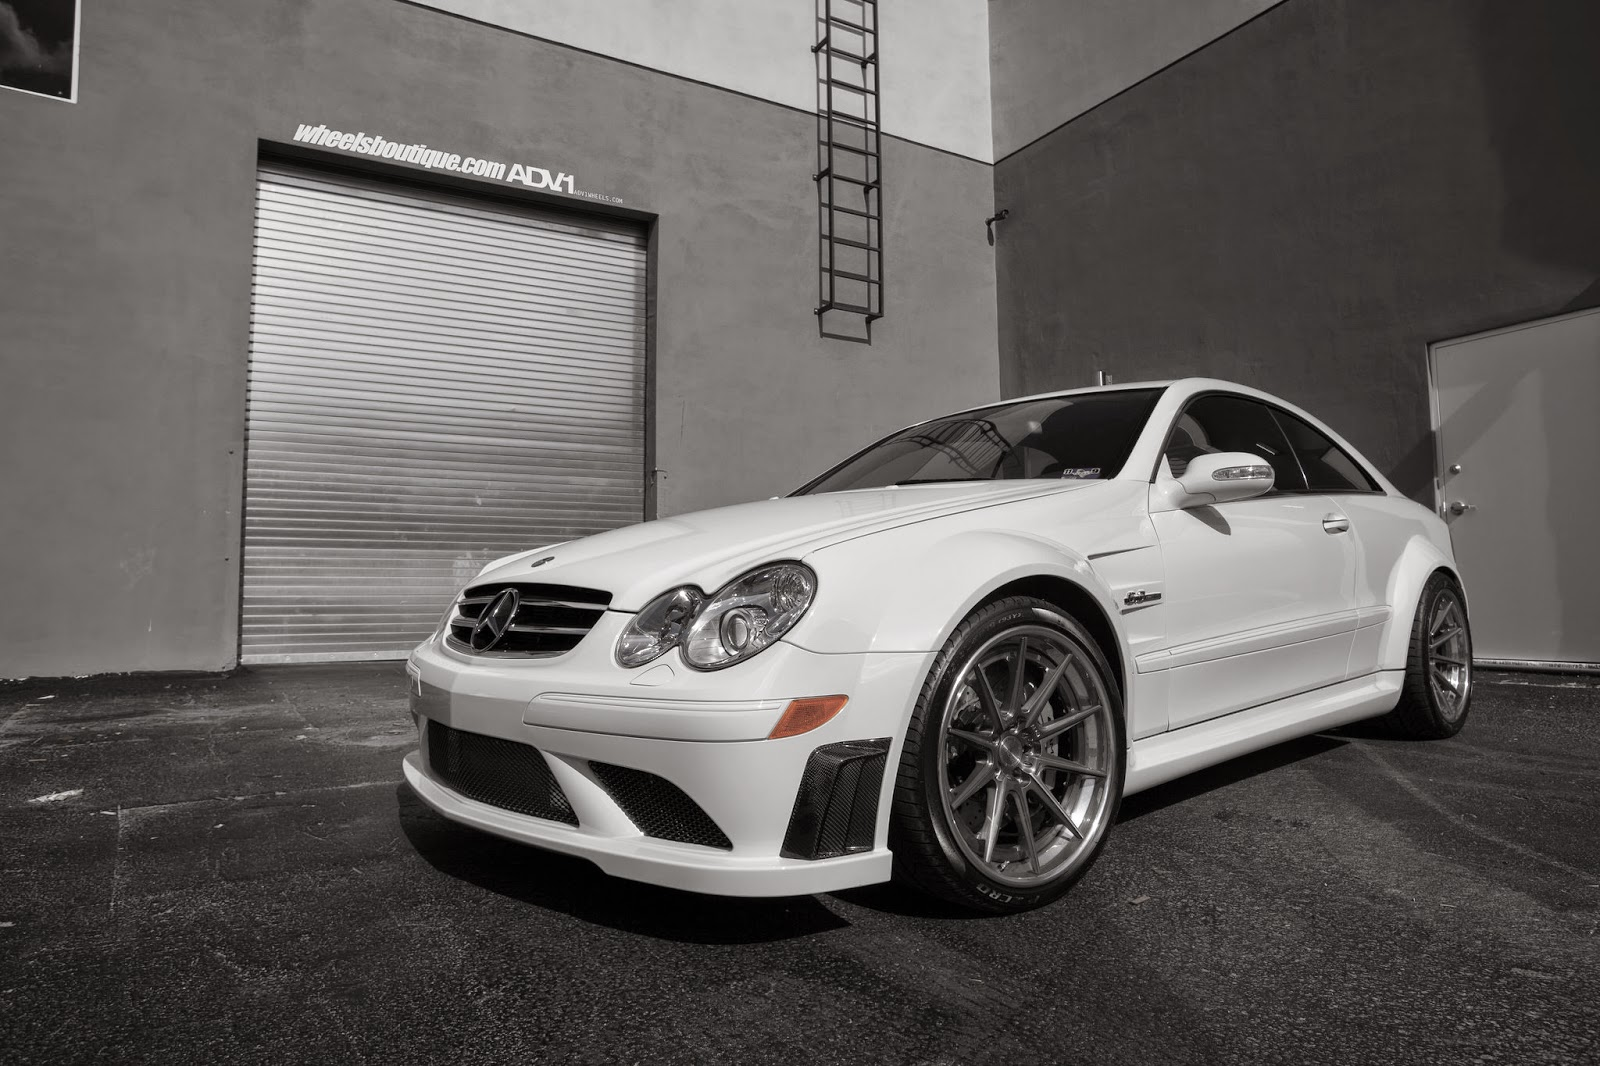 Mercedes benz clk63 amg black series on adv 1 wheels for Mercedes benz e series amg